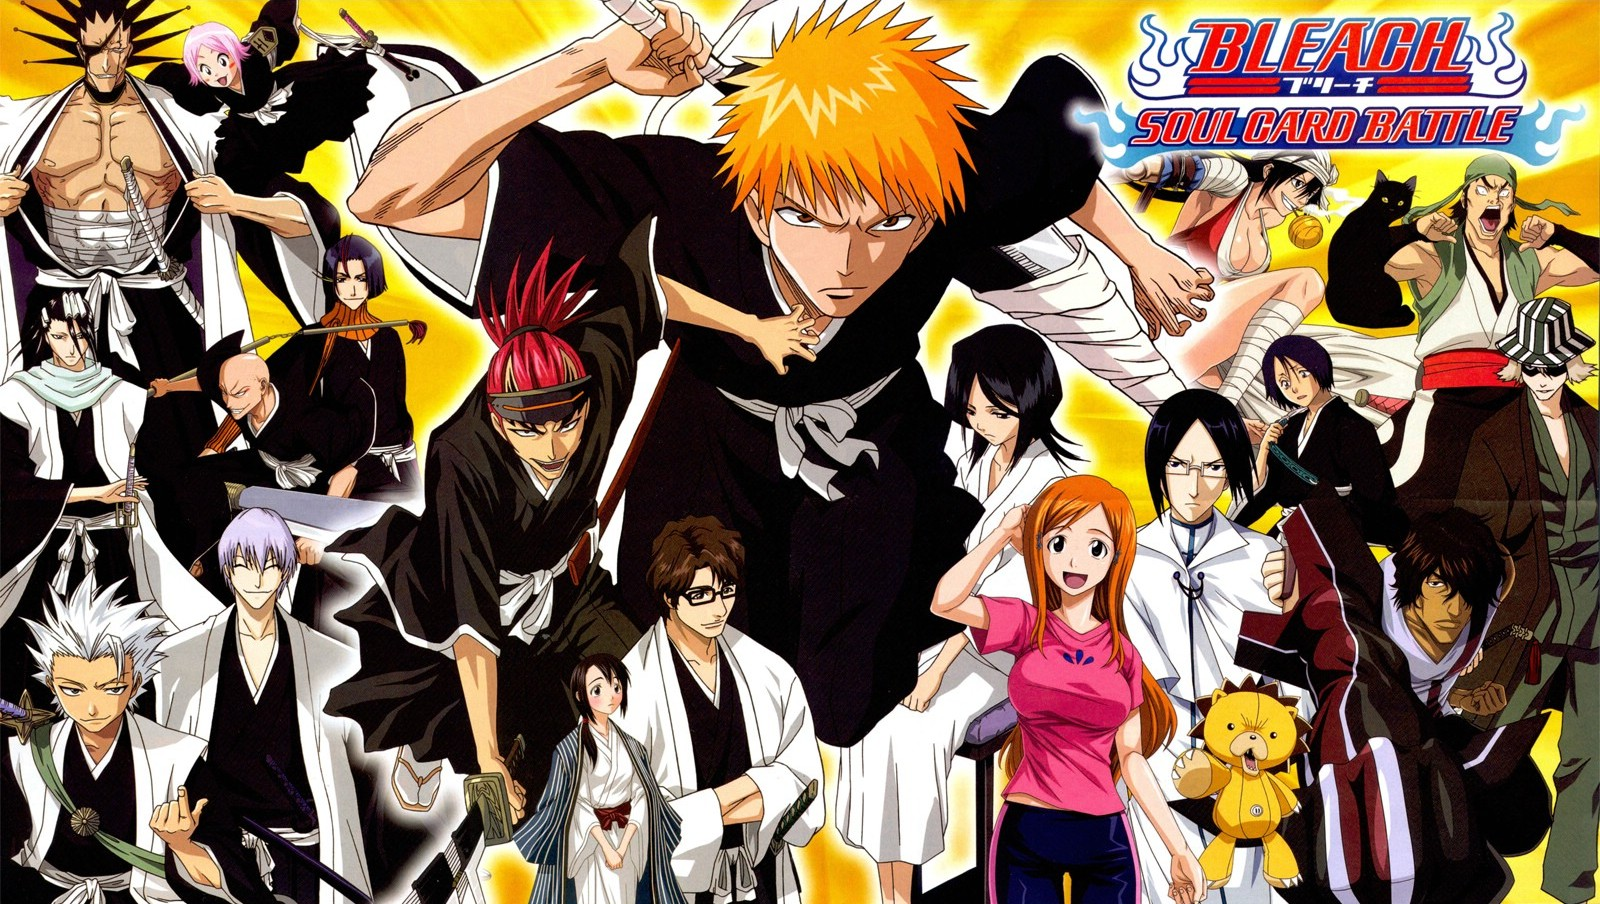 Bleach Anime Wallpaper - Wallpapers Browse